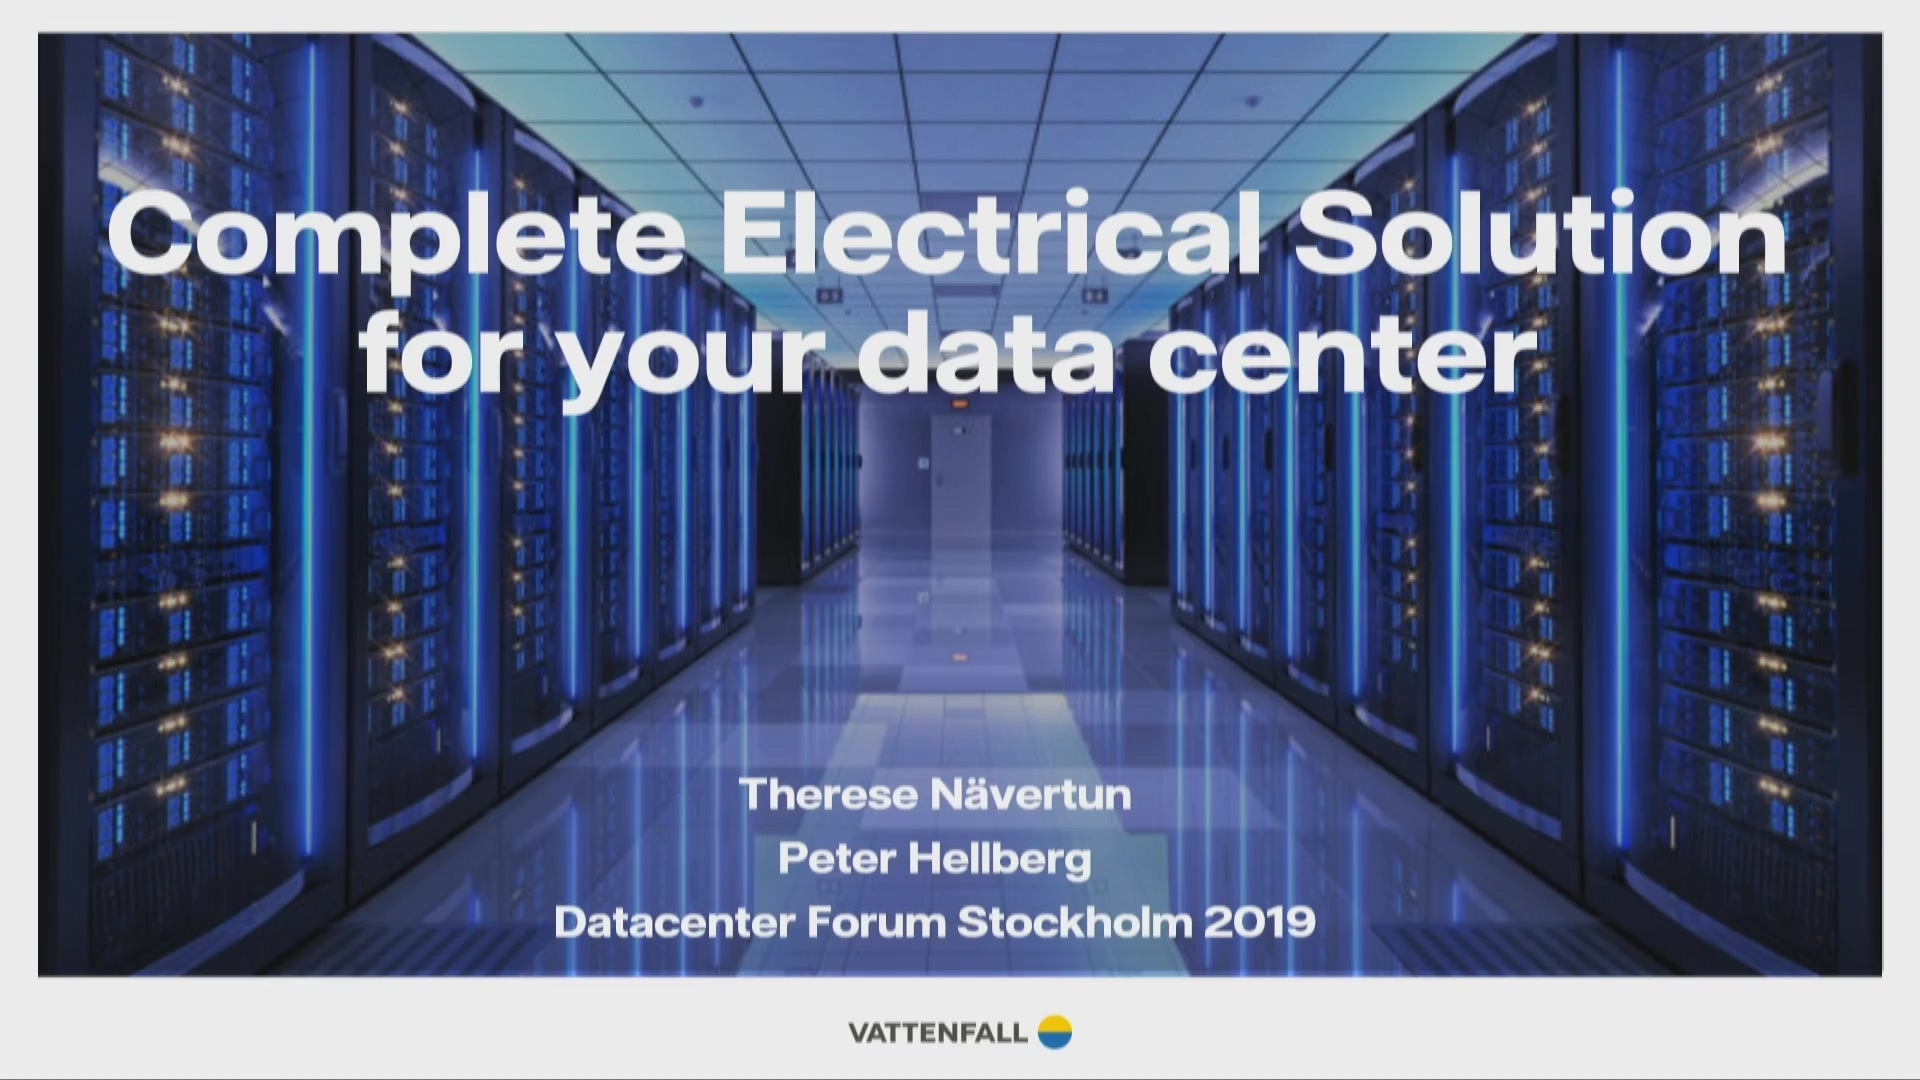 Vattenfall - Therese Nävertun + Peter Hellberg  - Complete Electrical Solution for your Data Center